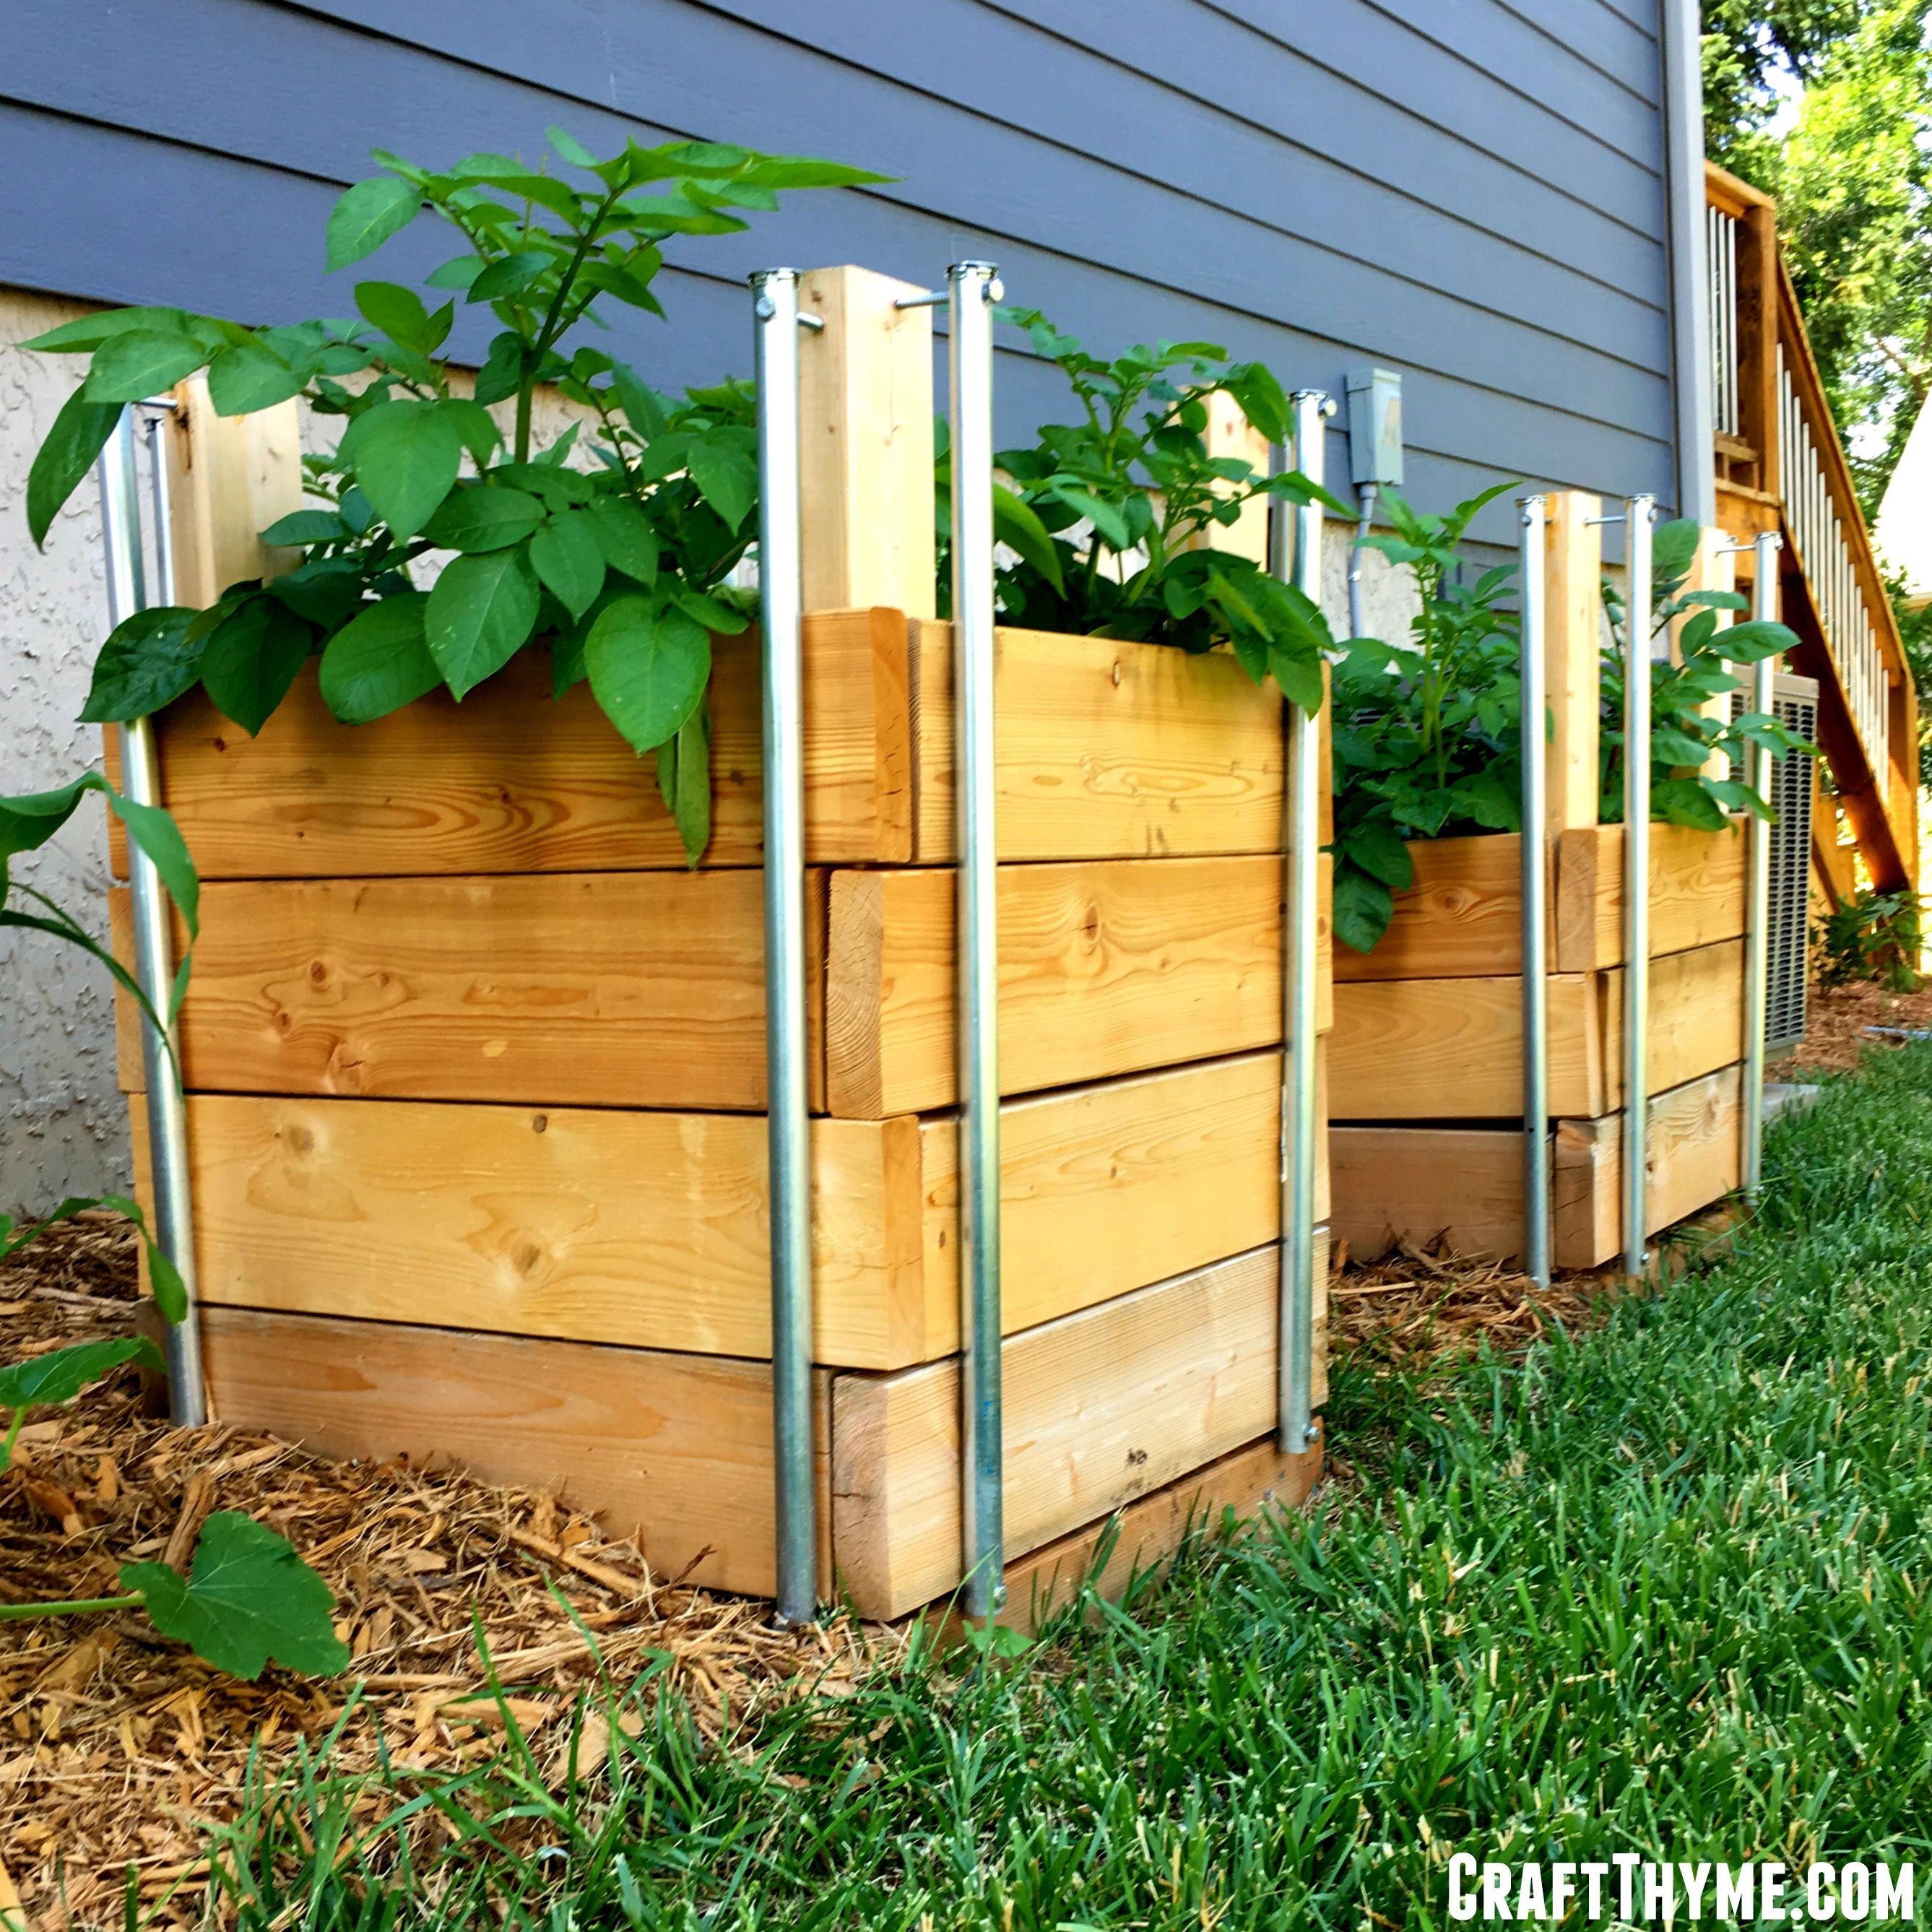 15 Stunning Container Vegetable Garden Design Ideas Tips: A Morning Cup Of Joe